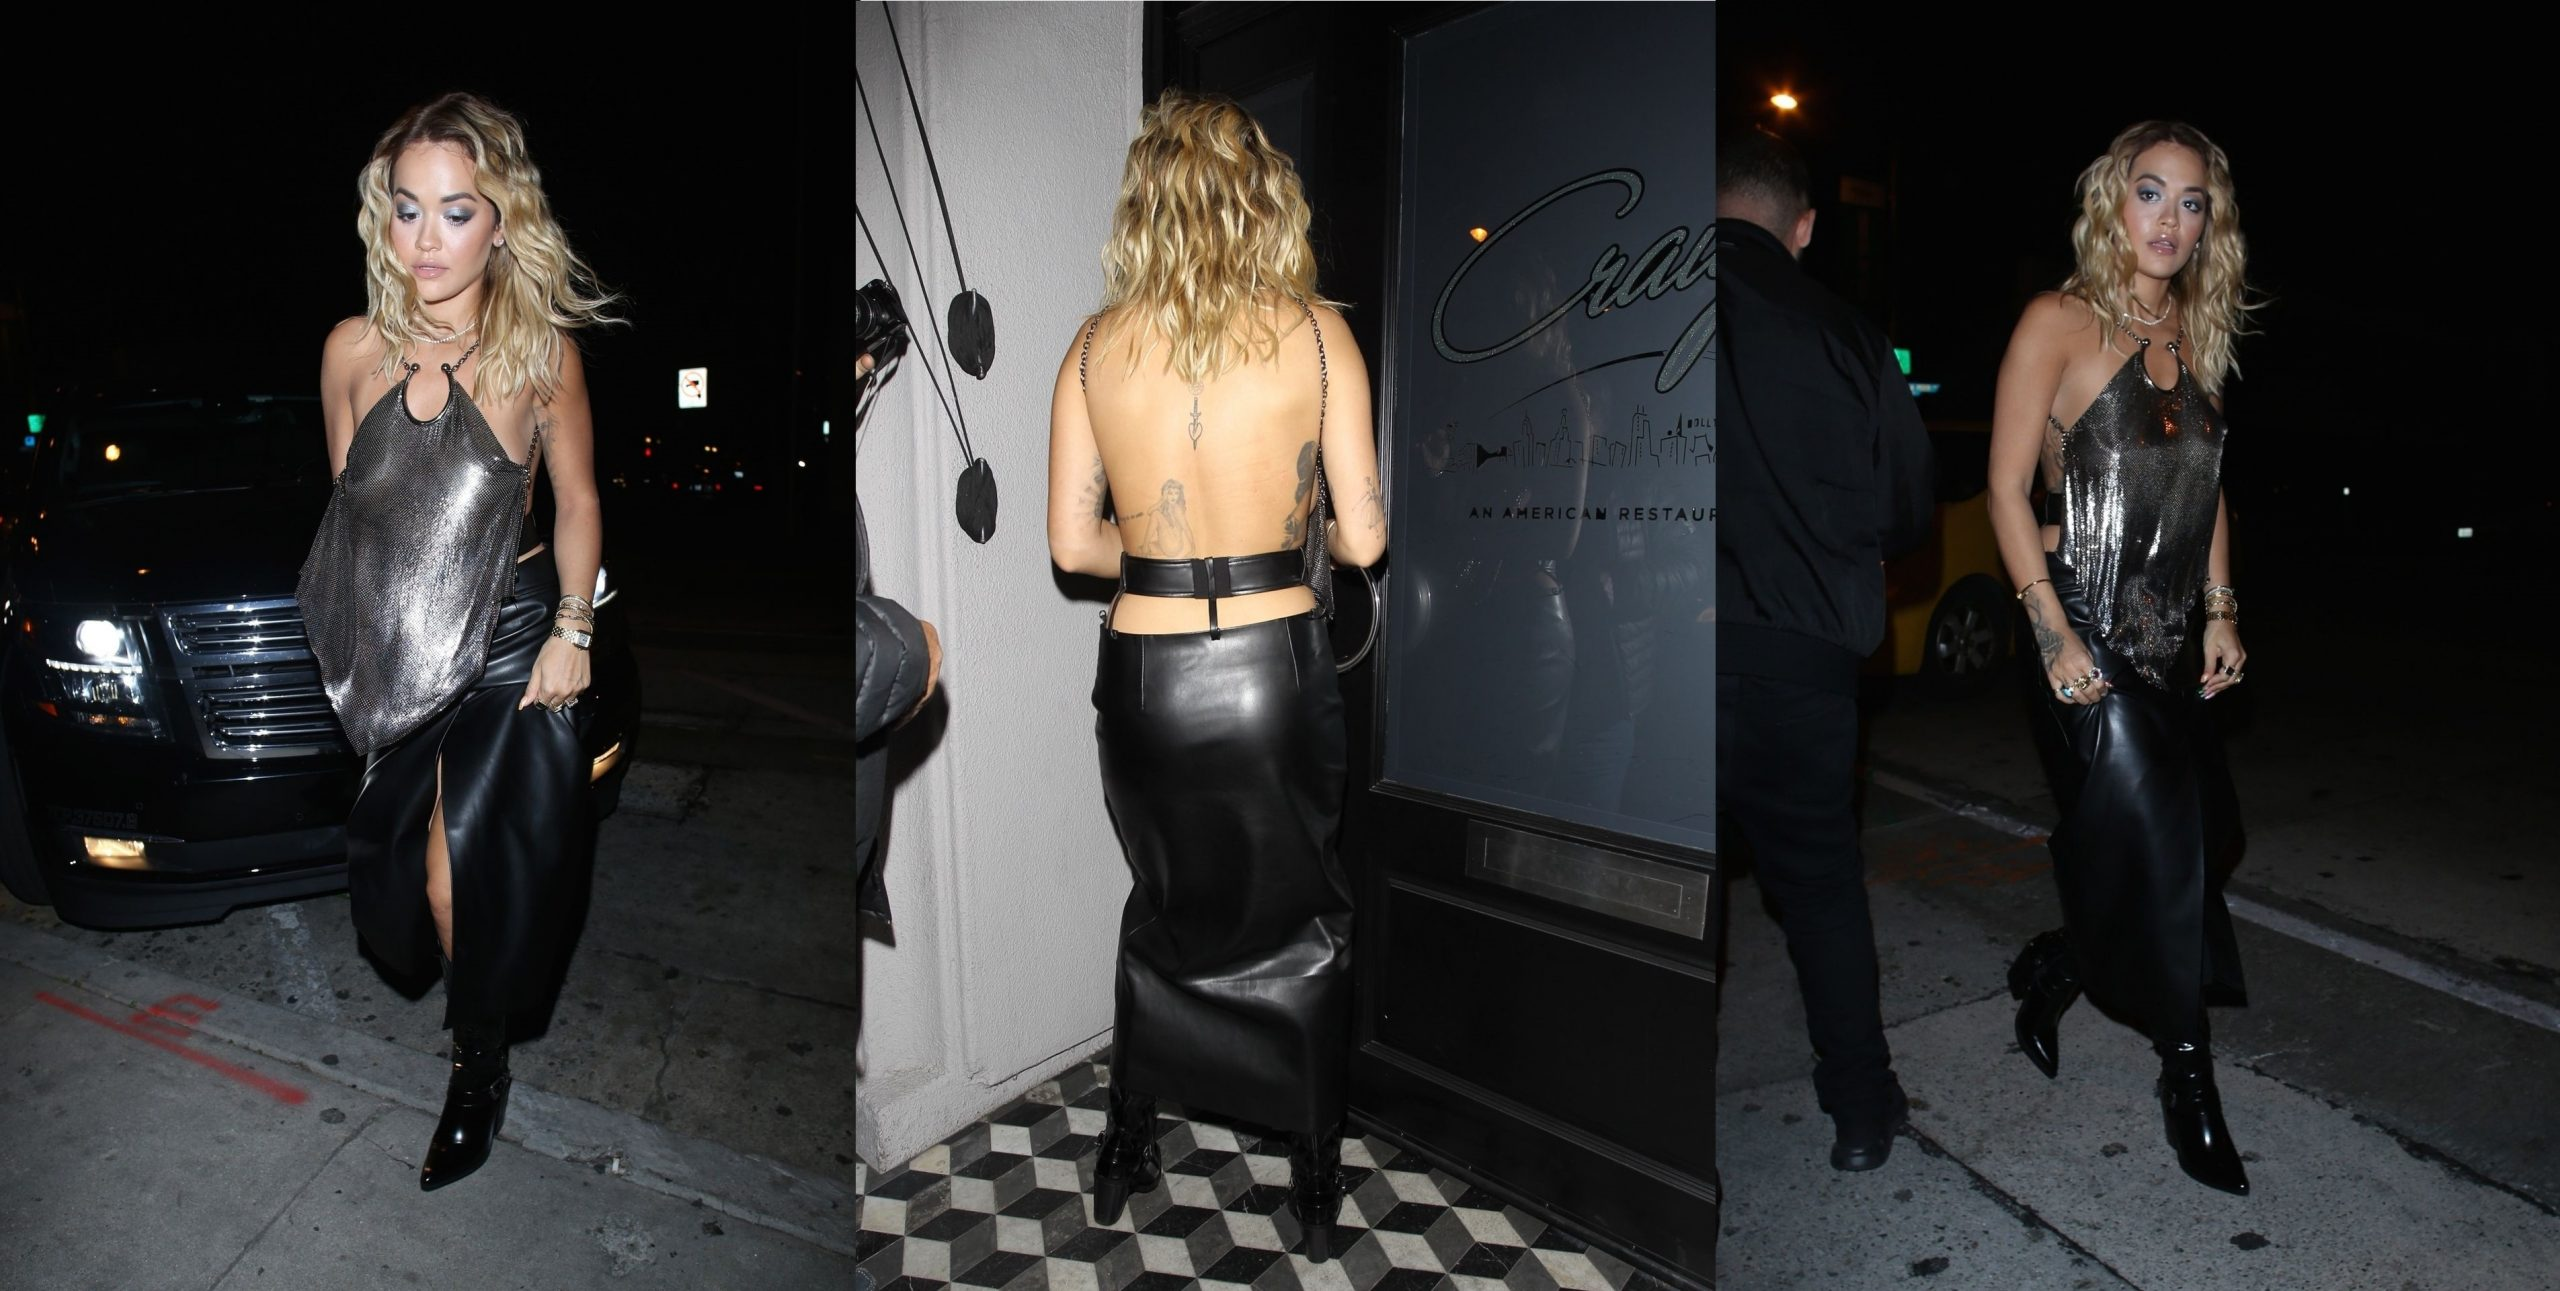 Rita Ora Almost Naked Nightout